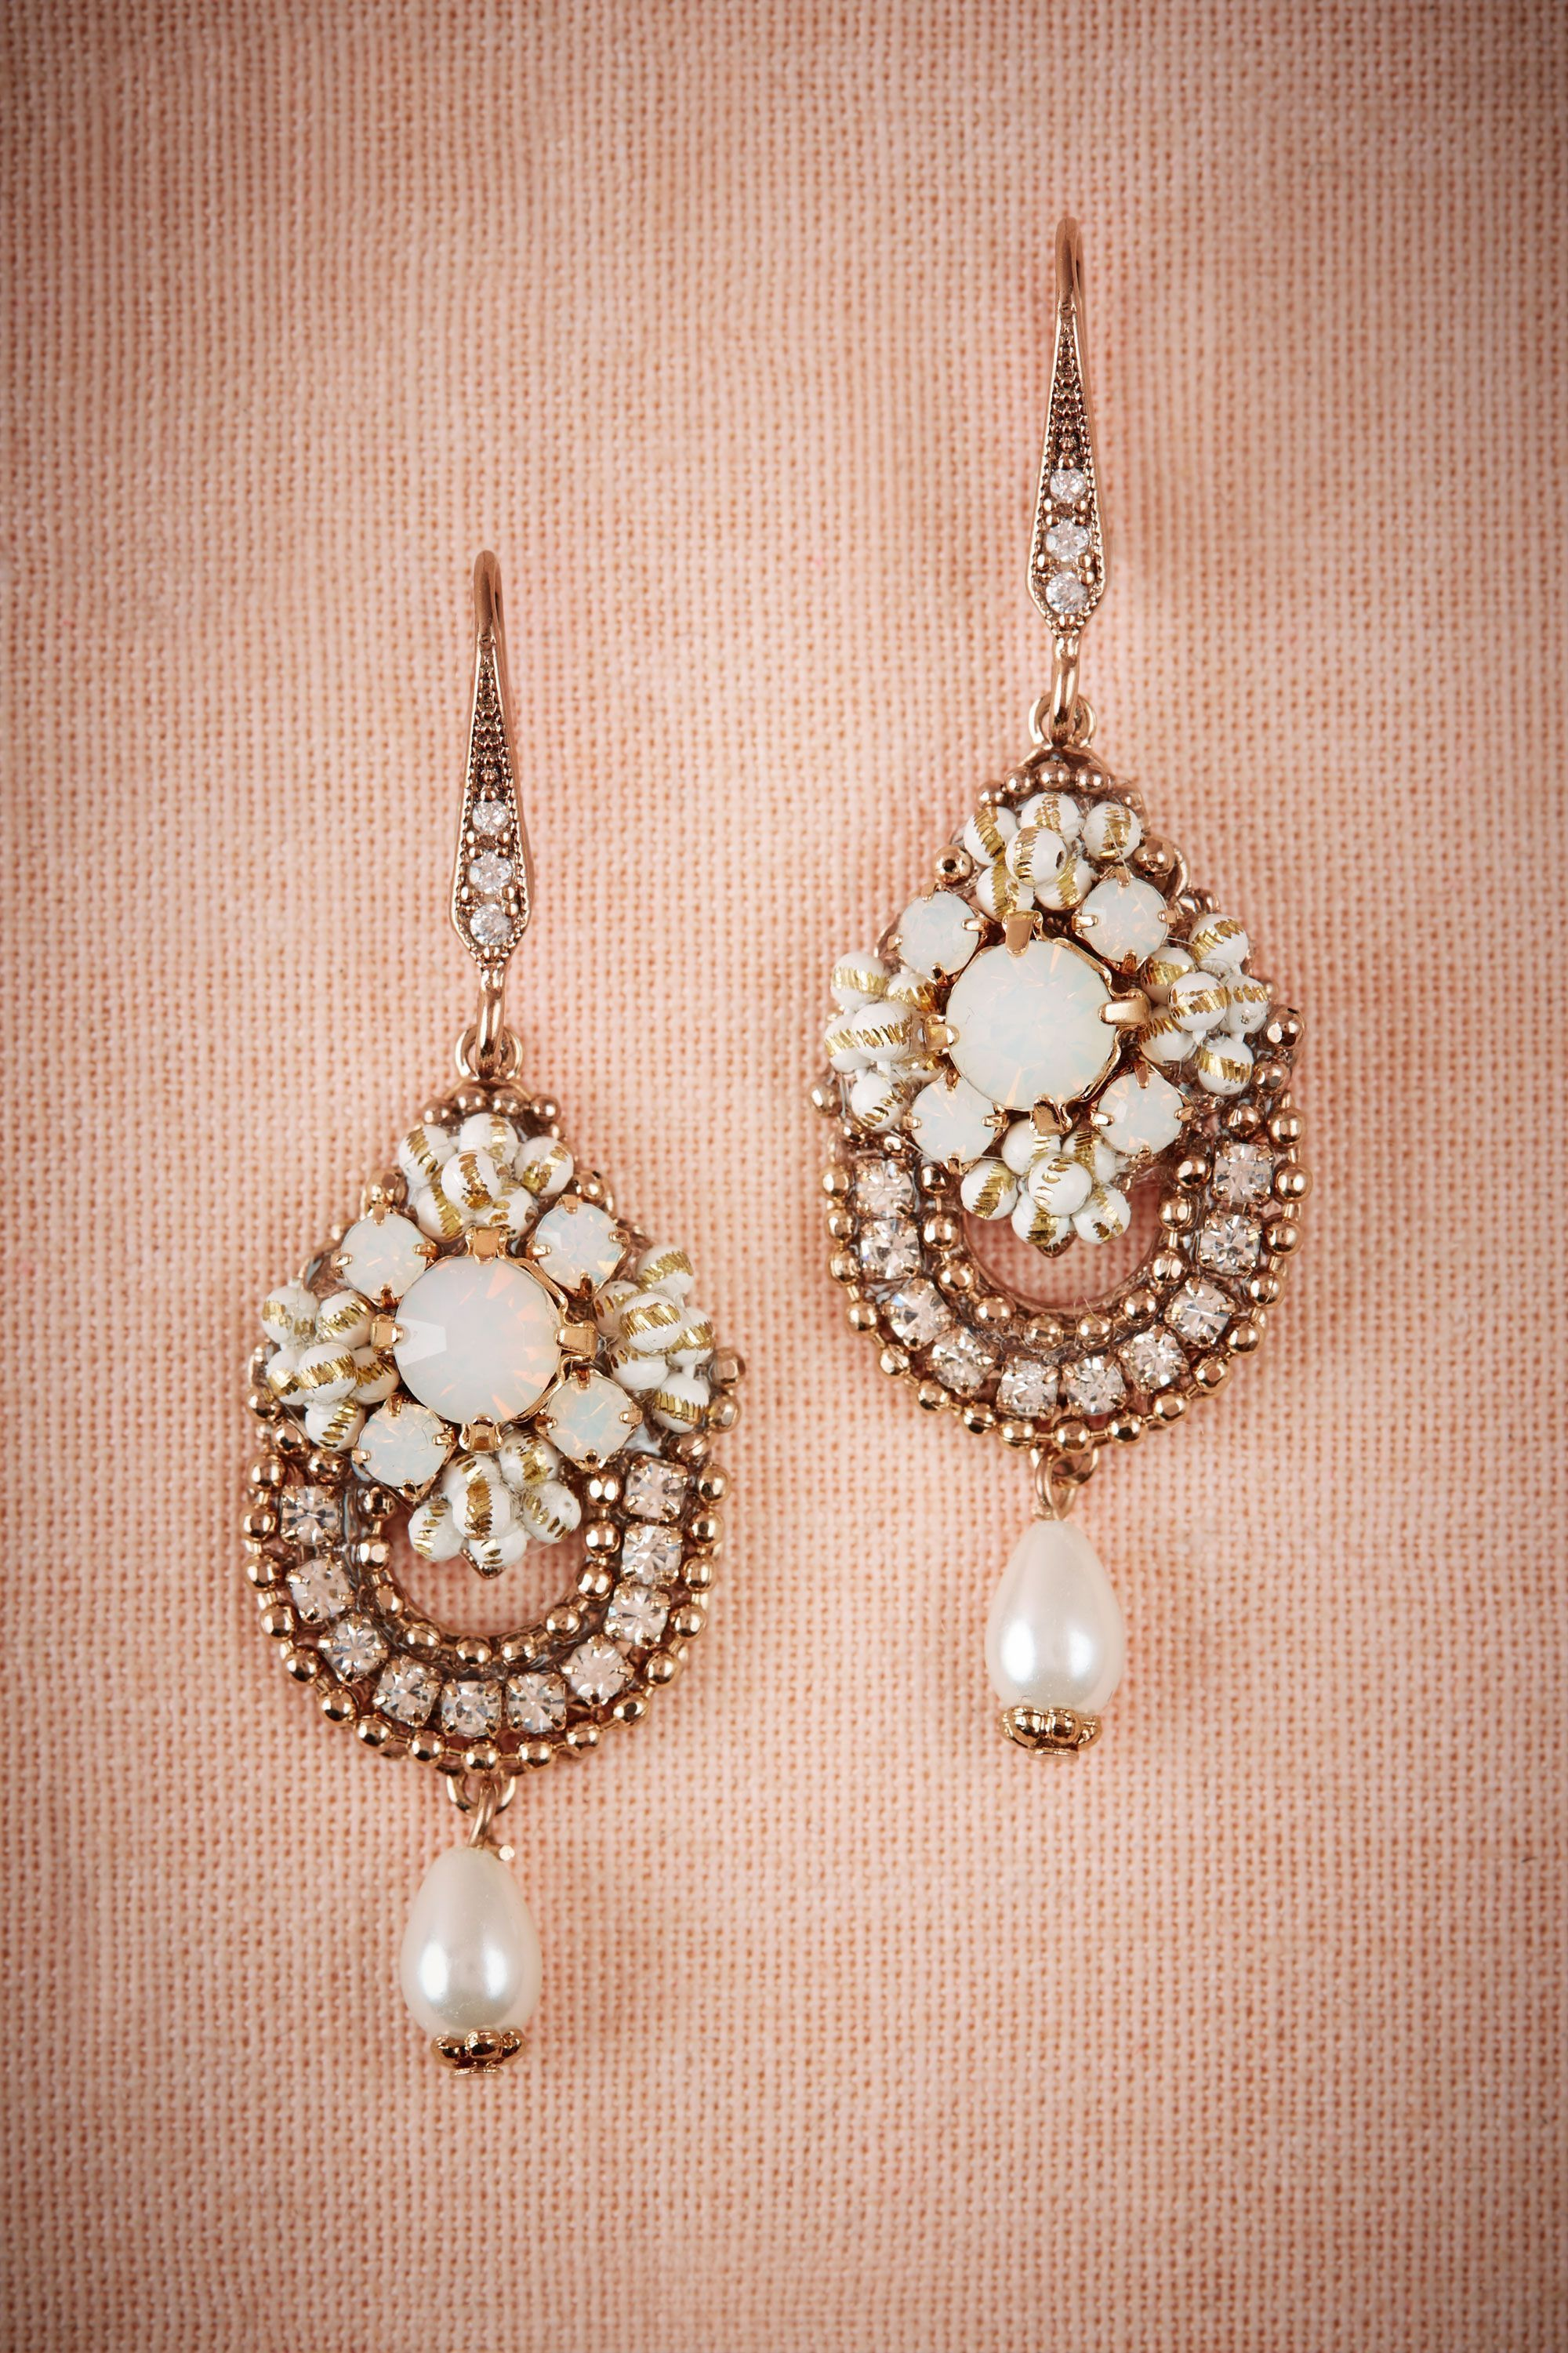 vintage-inspired bridal jewelry | influenced by 1930s design ...